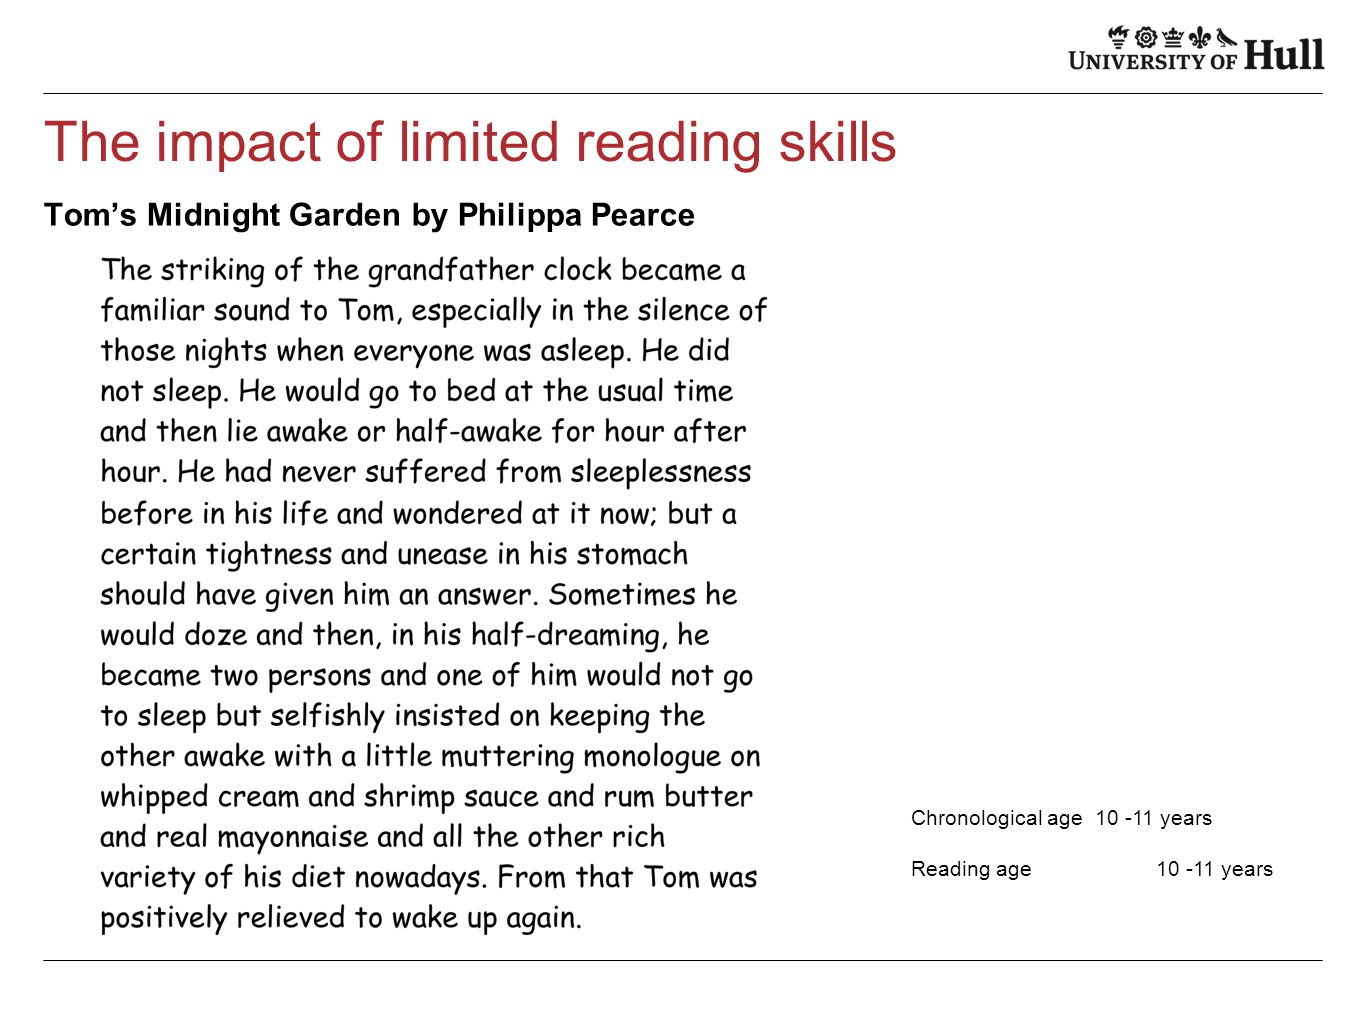 The impact of limited reading skills Tom's Midnight Garden by Philippa Pearce Chronological age10 -11 years Reading age 10 -11 years